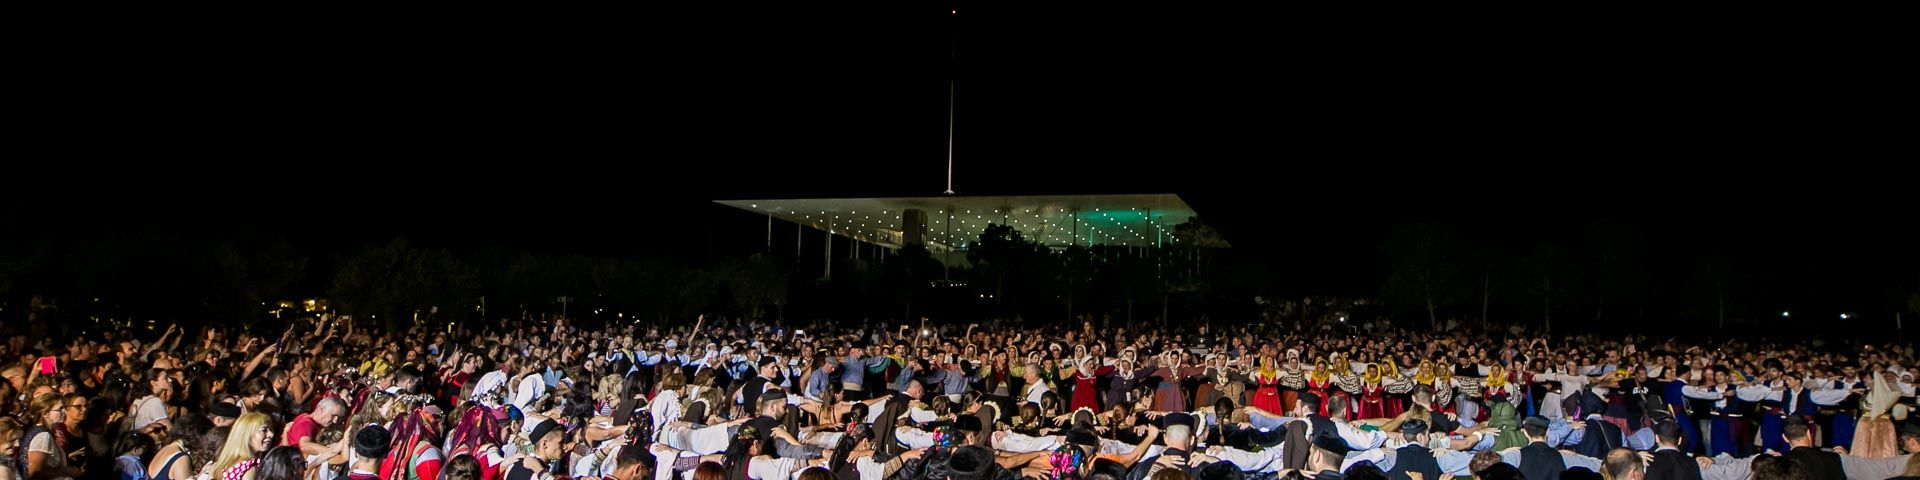 Flock of visitors at the Stavros Niarchos Park at night during an event at the SNFCC